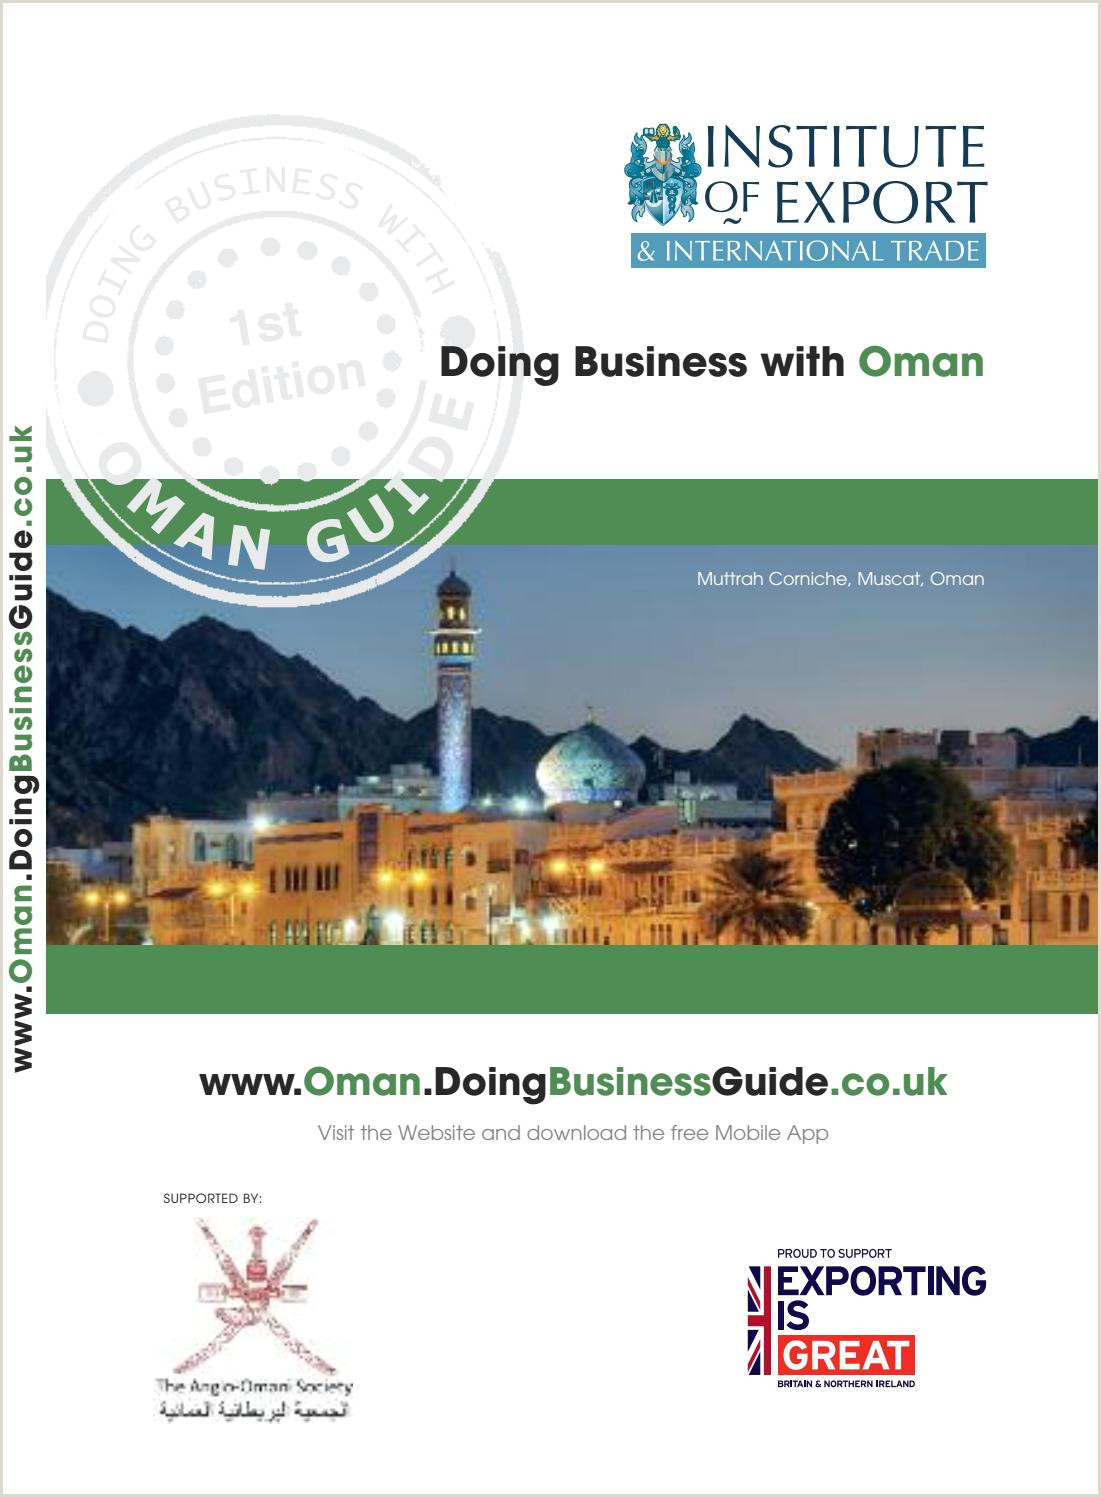 Unique Spa Business Cards Doing Business With Oman Guide By Doing Business Guides Issuu